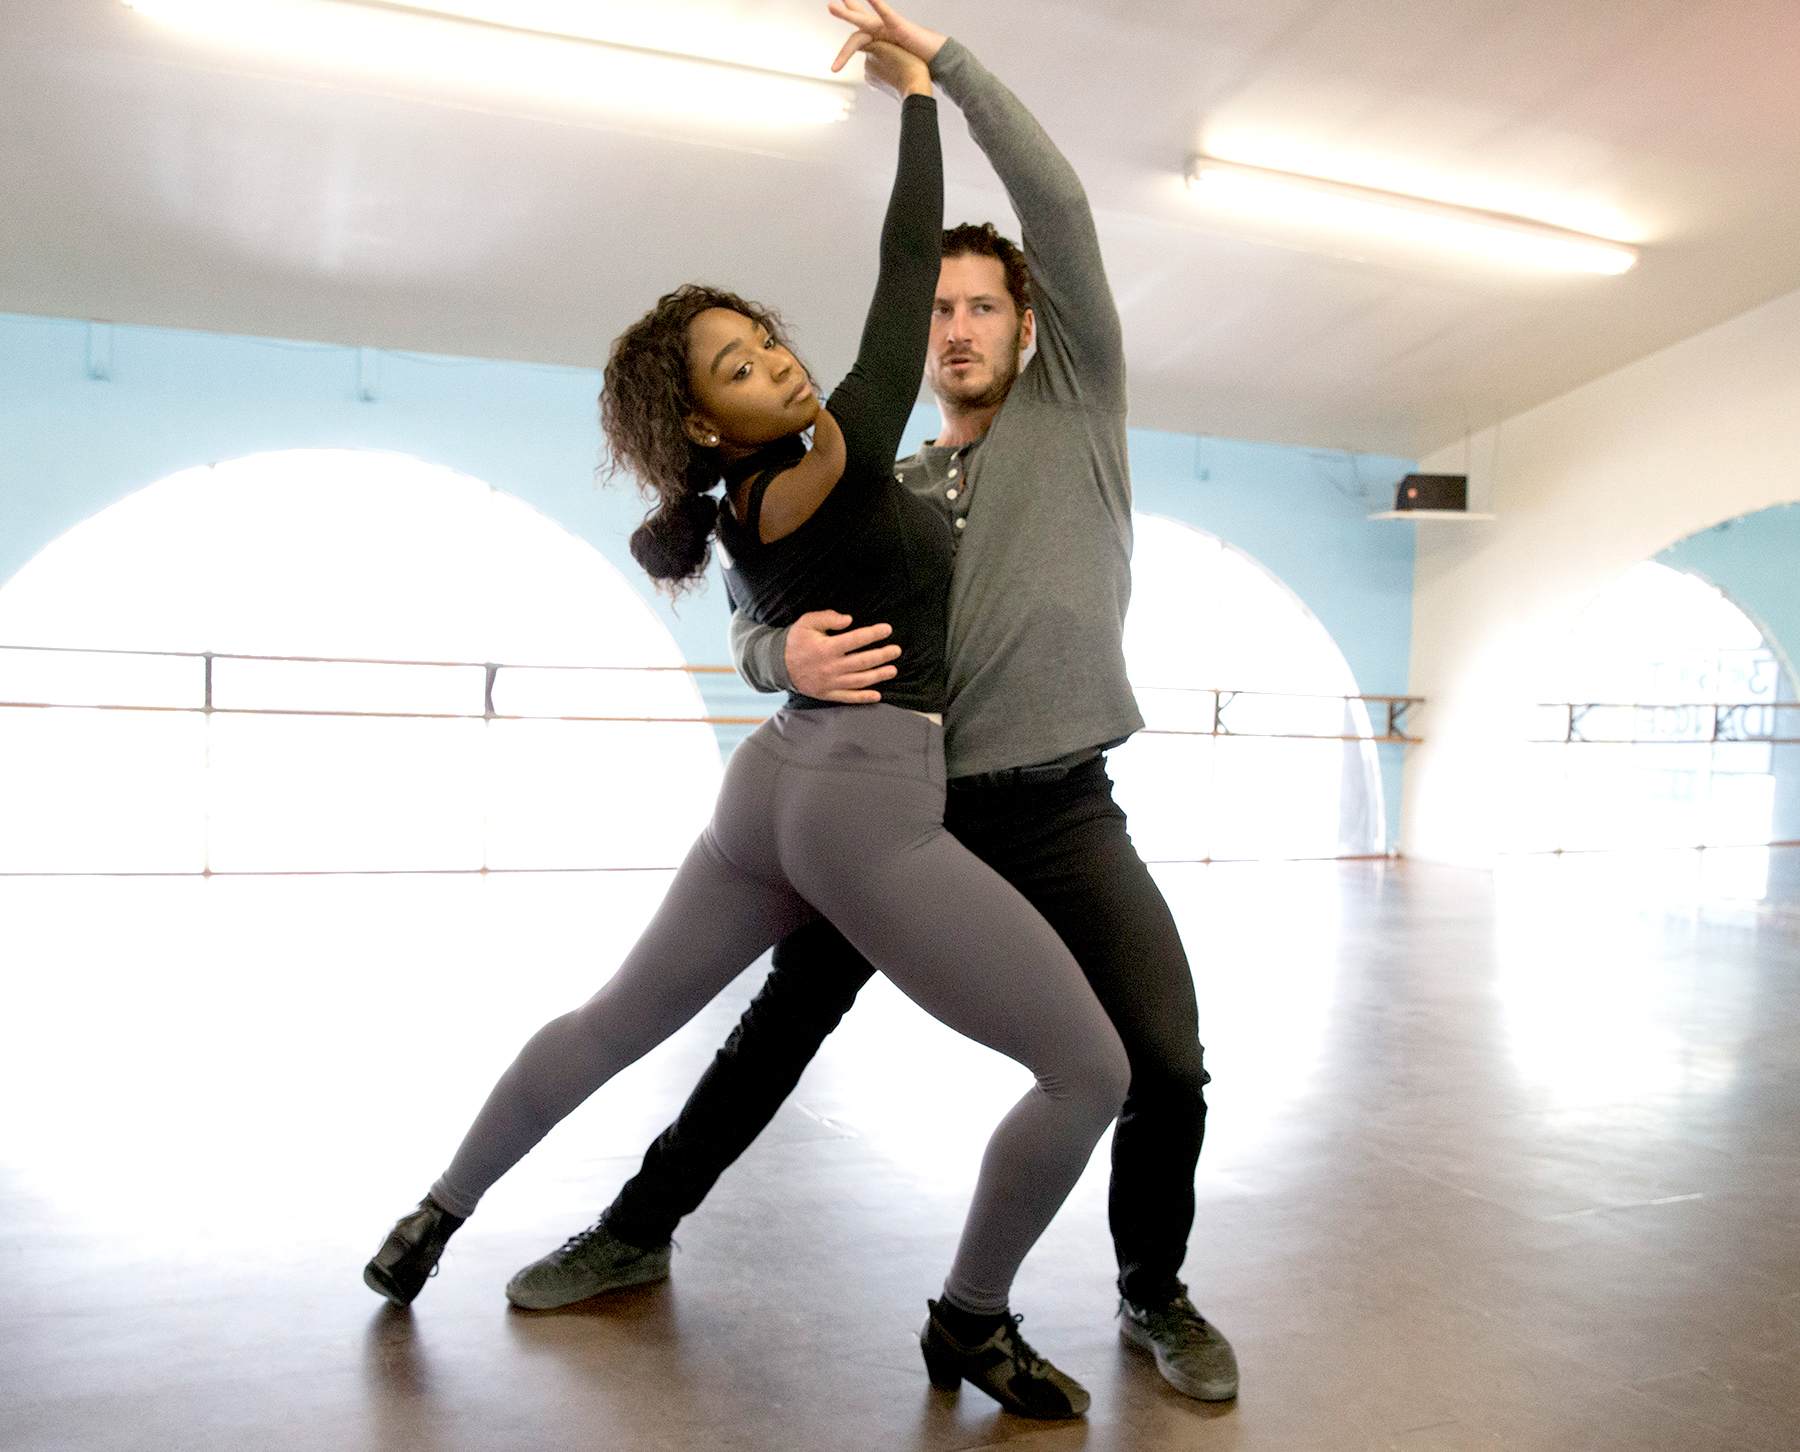 Normani Kordei and Valentin Chmerkovskiy ABC/Paul Hebert